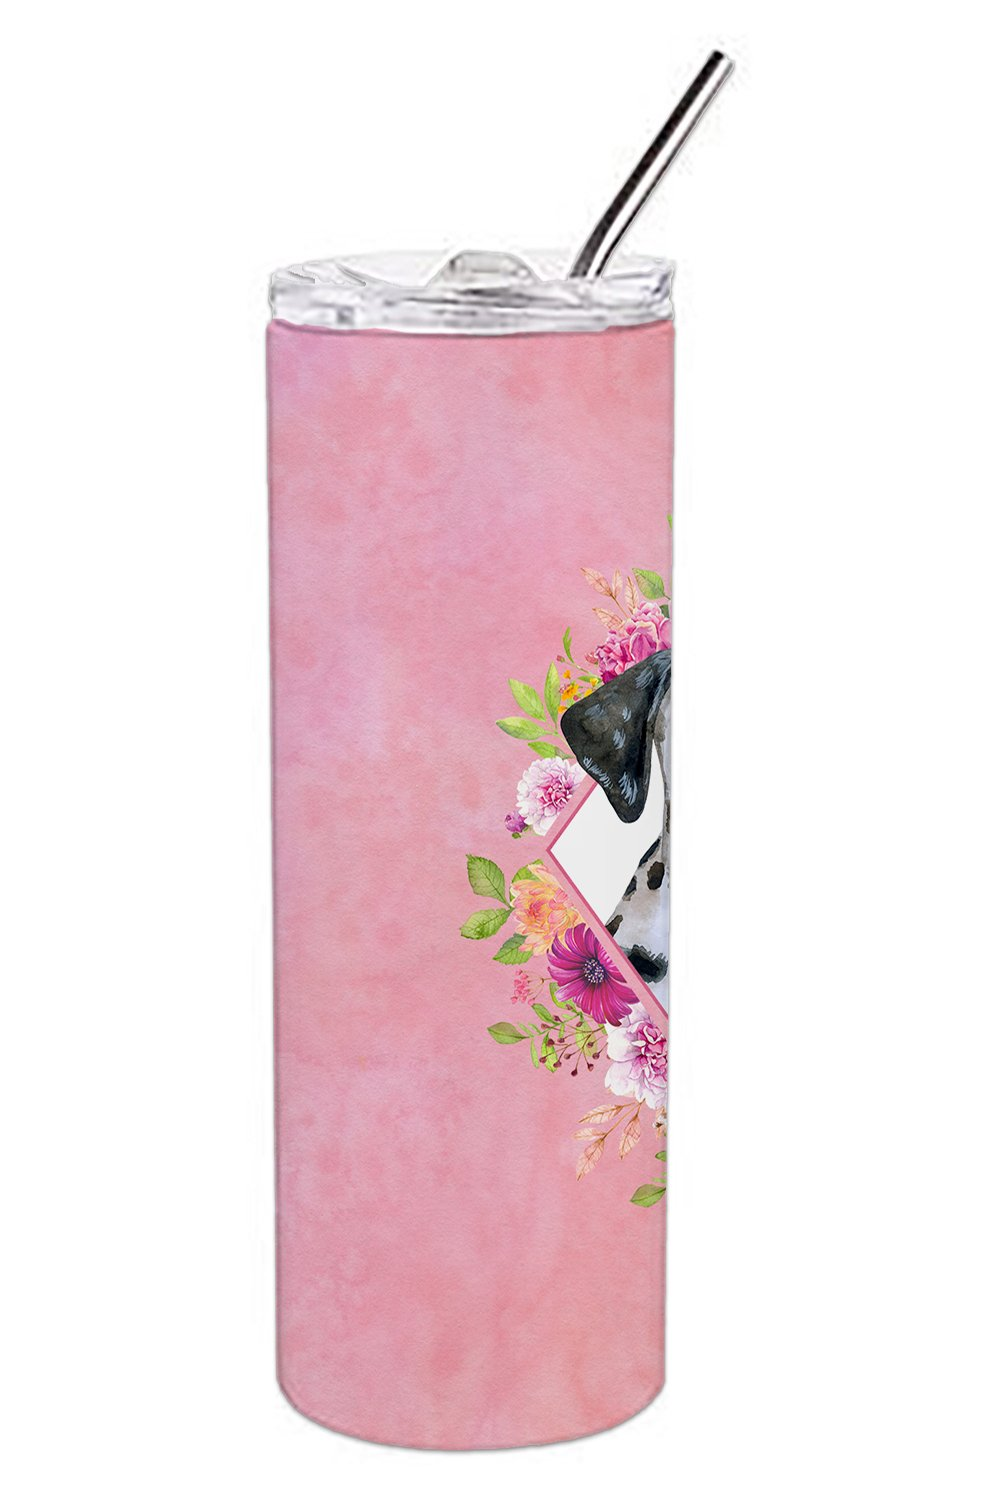 Dalmatian Puppy Pink Flowers Double Walled Stainless Steel 20 oz Skinny Tumbler CK4136TBL20 by Caroline's Treasures